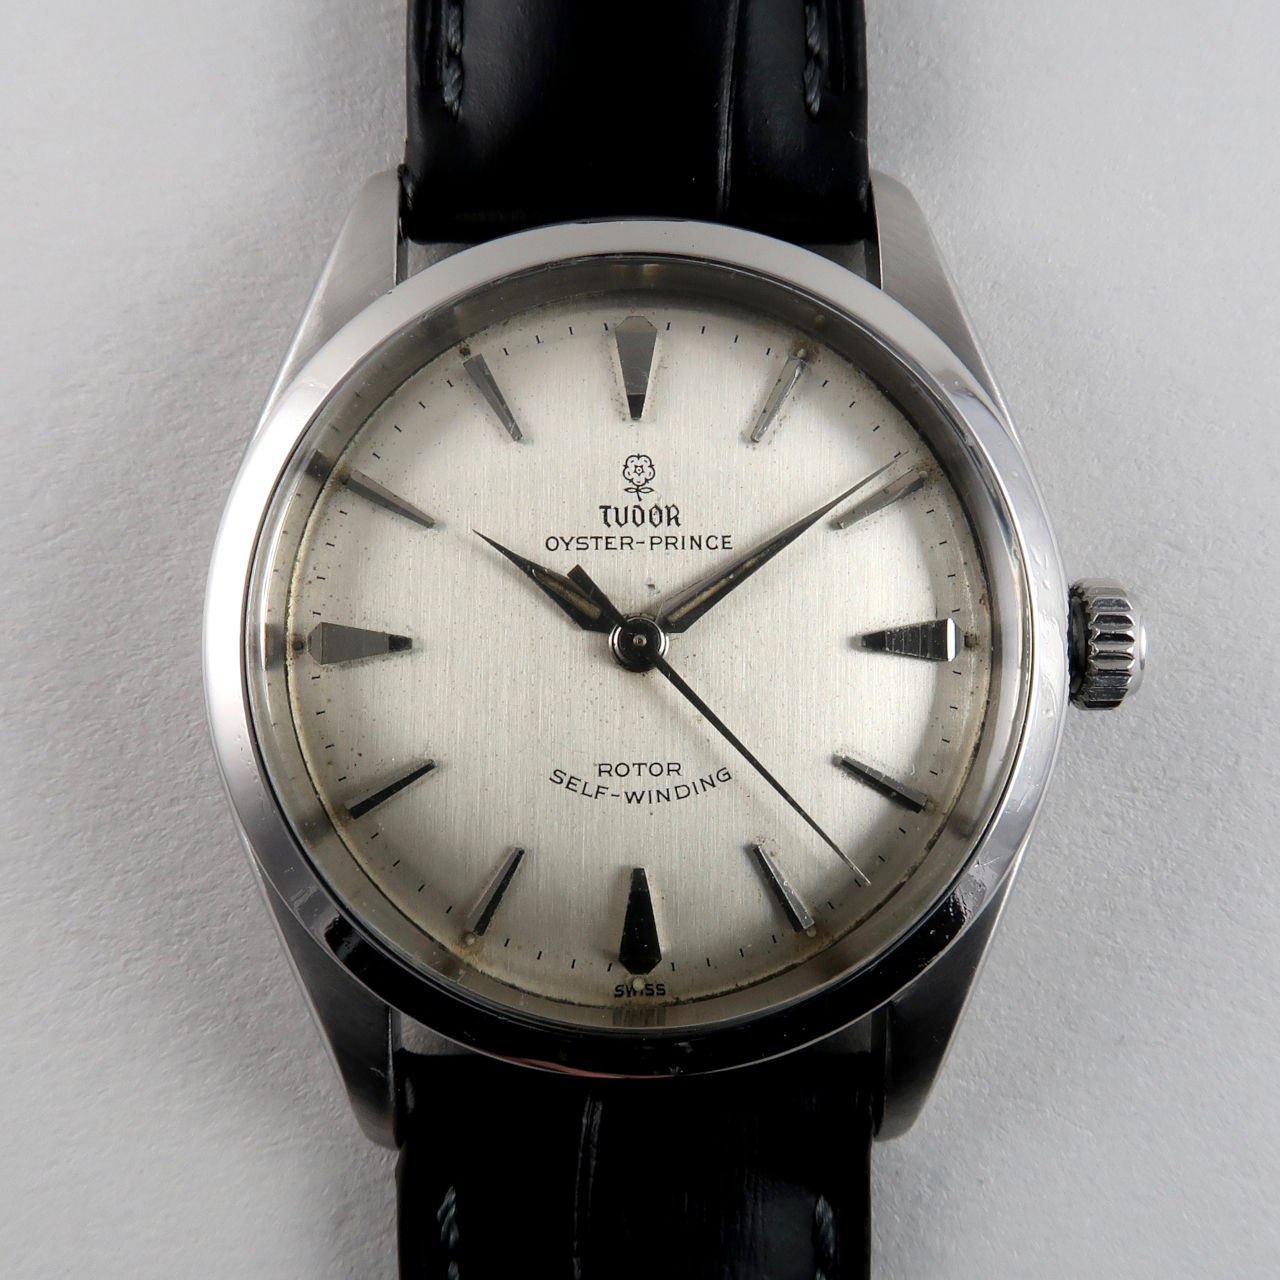 Tudor Oyster-Prince Ref. 7965 dated 1964